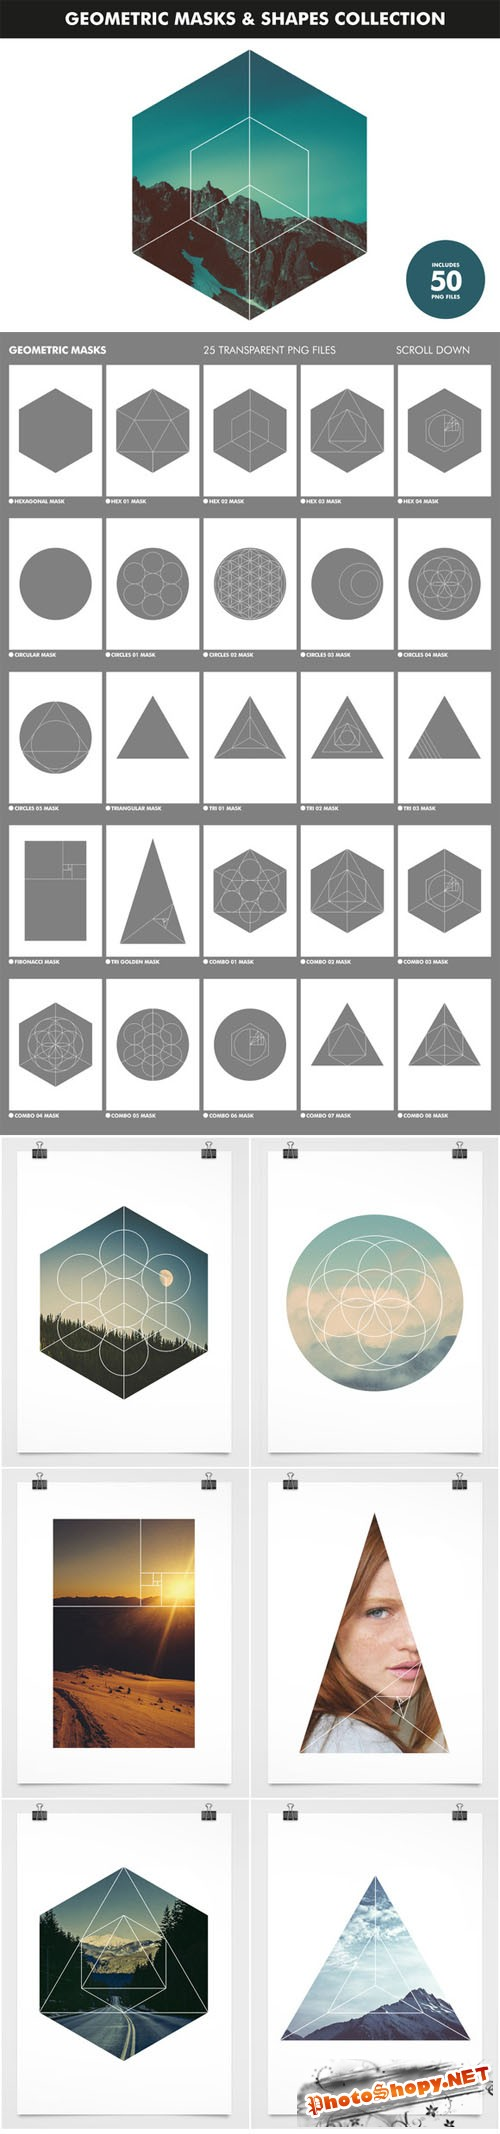 Geometric Masks & Shapes Collection - Creativemarket 195489